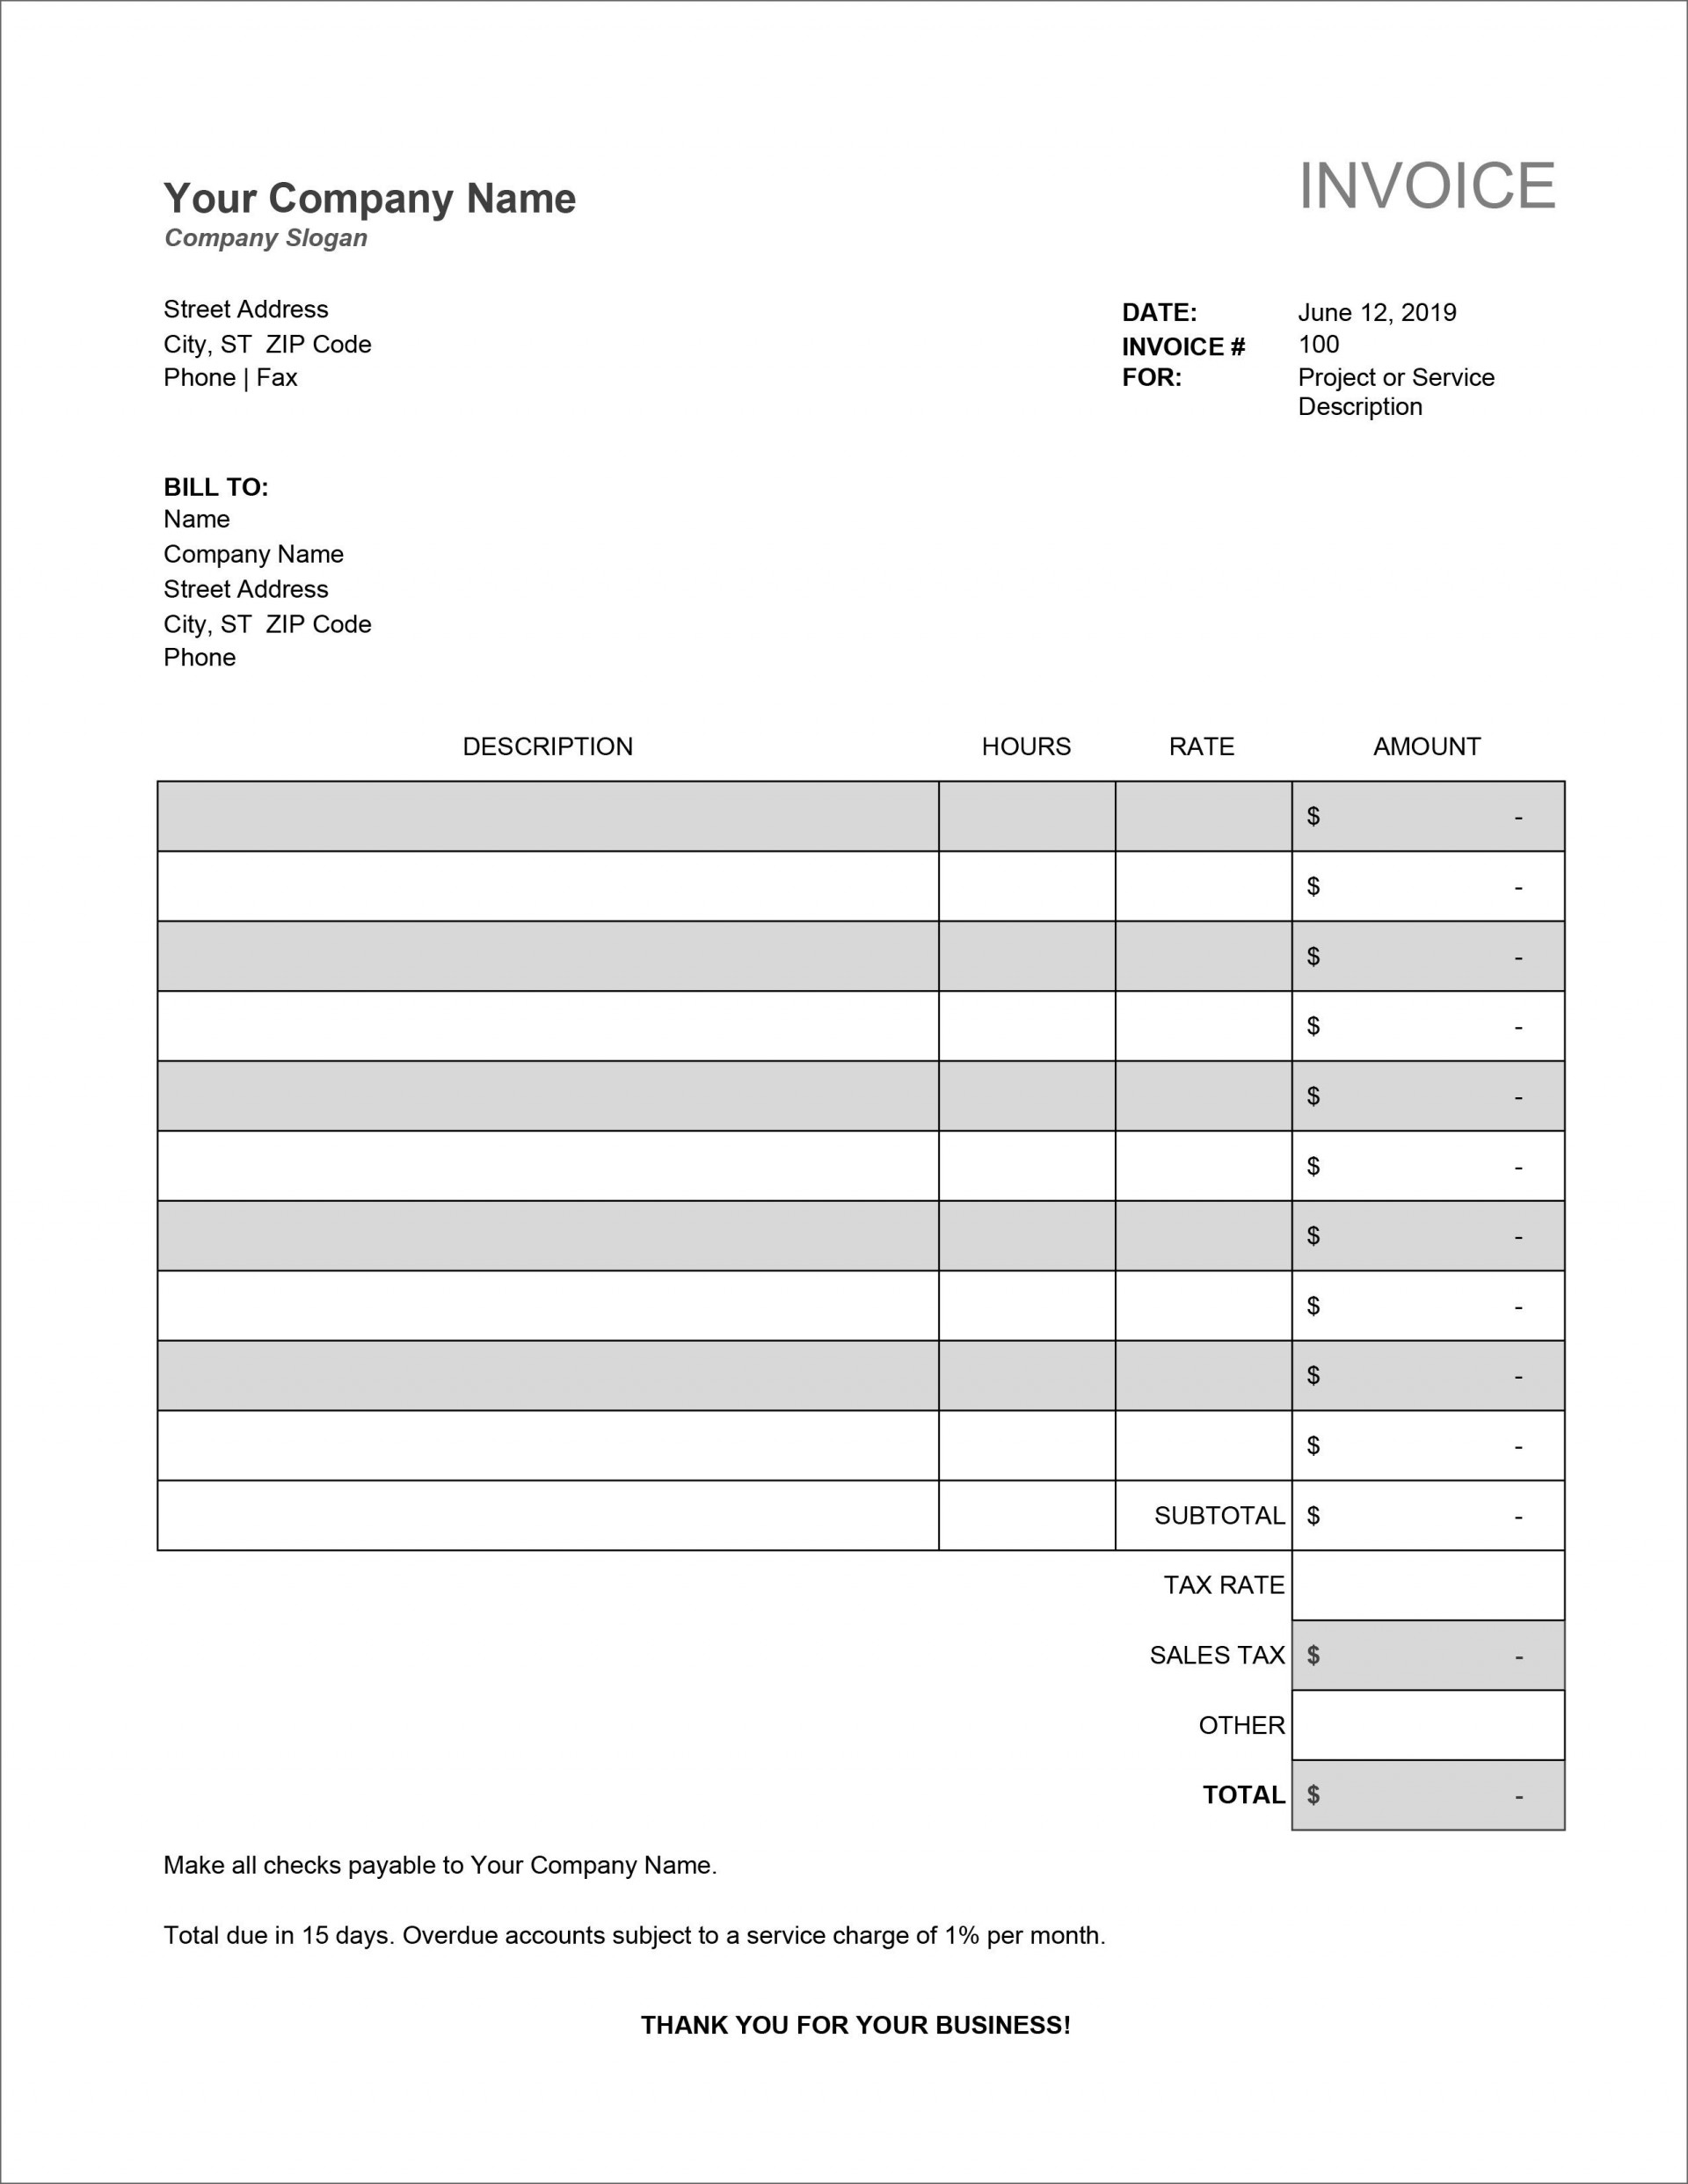 007 Unforgettable Service Invoice Template Free Picture  Rendered Word Auto Download1920